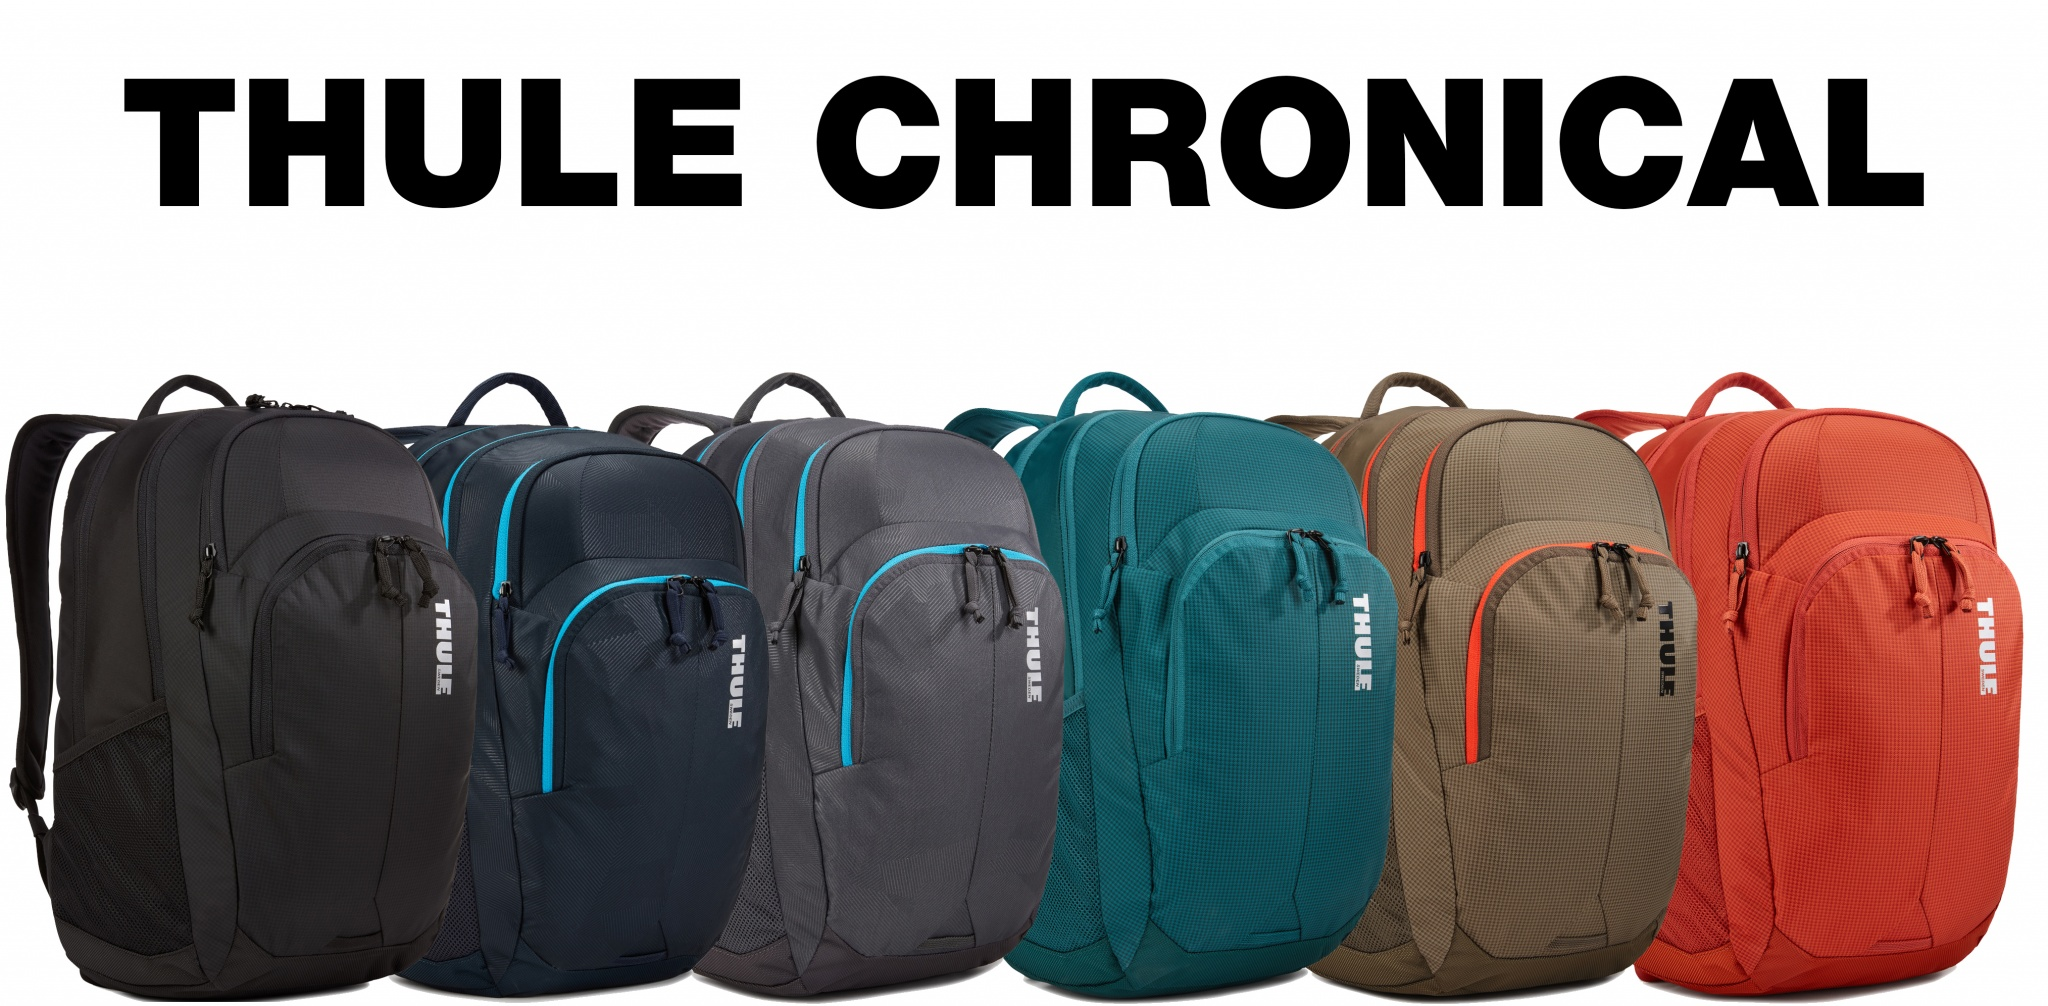 Thule chronical backpack.jpg